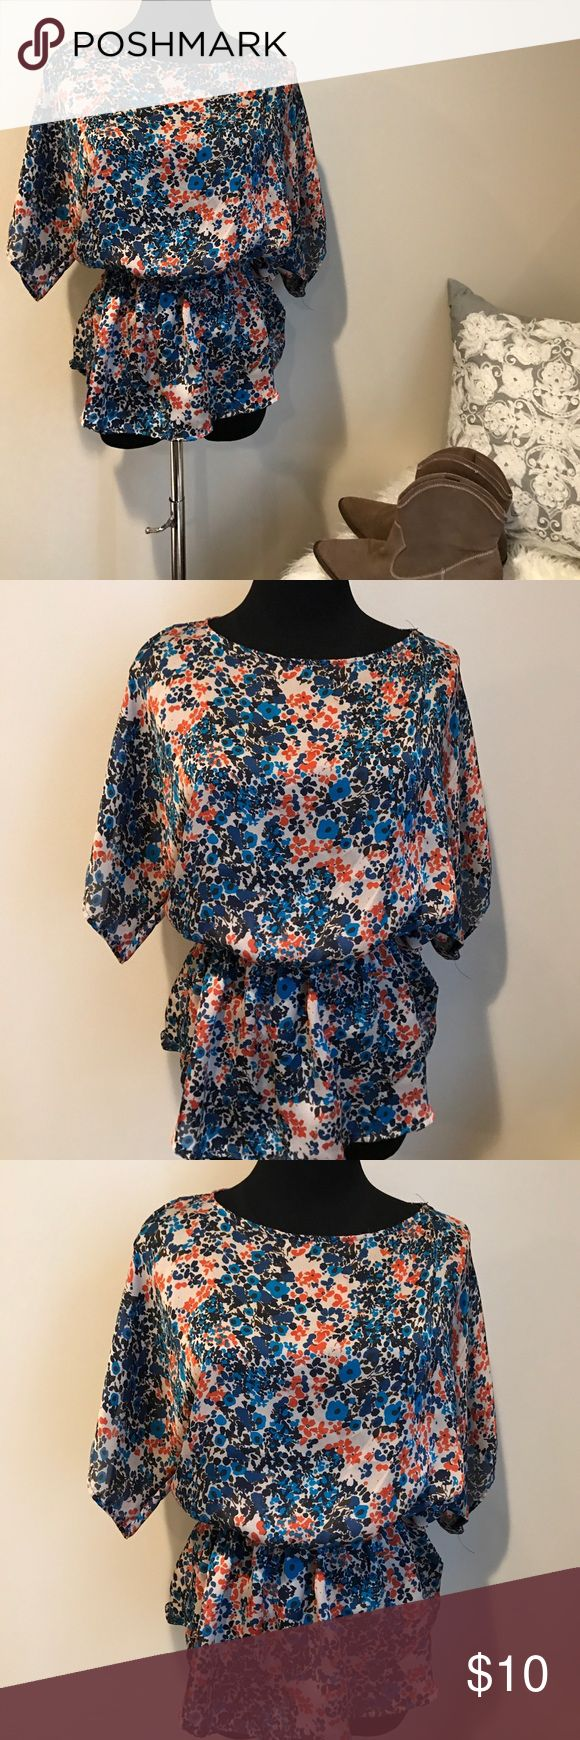 Floral top by mossimo orange blue so cute ! Super cute batwing top by mossimo excellent condition medium super fast shipping ! Mossimo Supply Co Tops Blouses